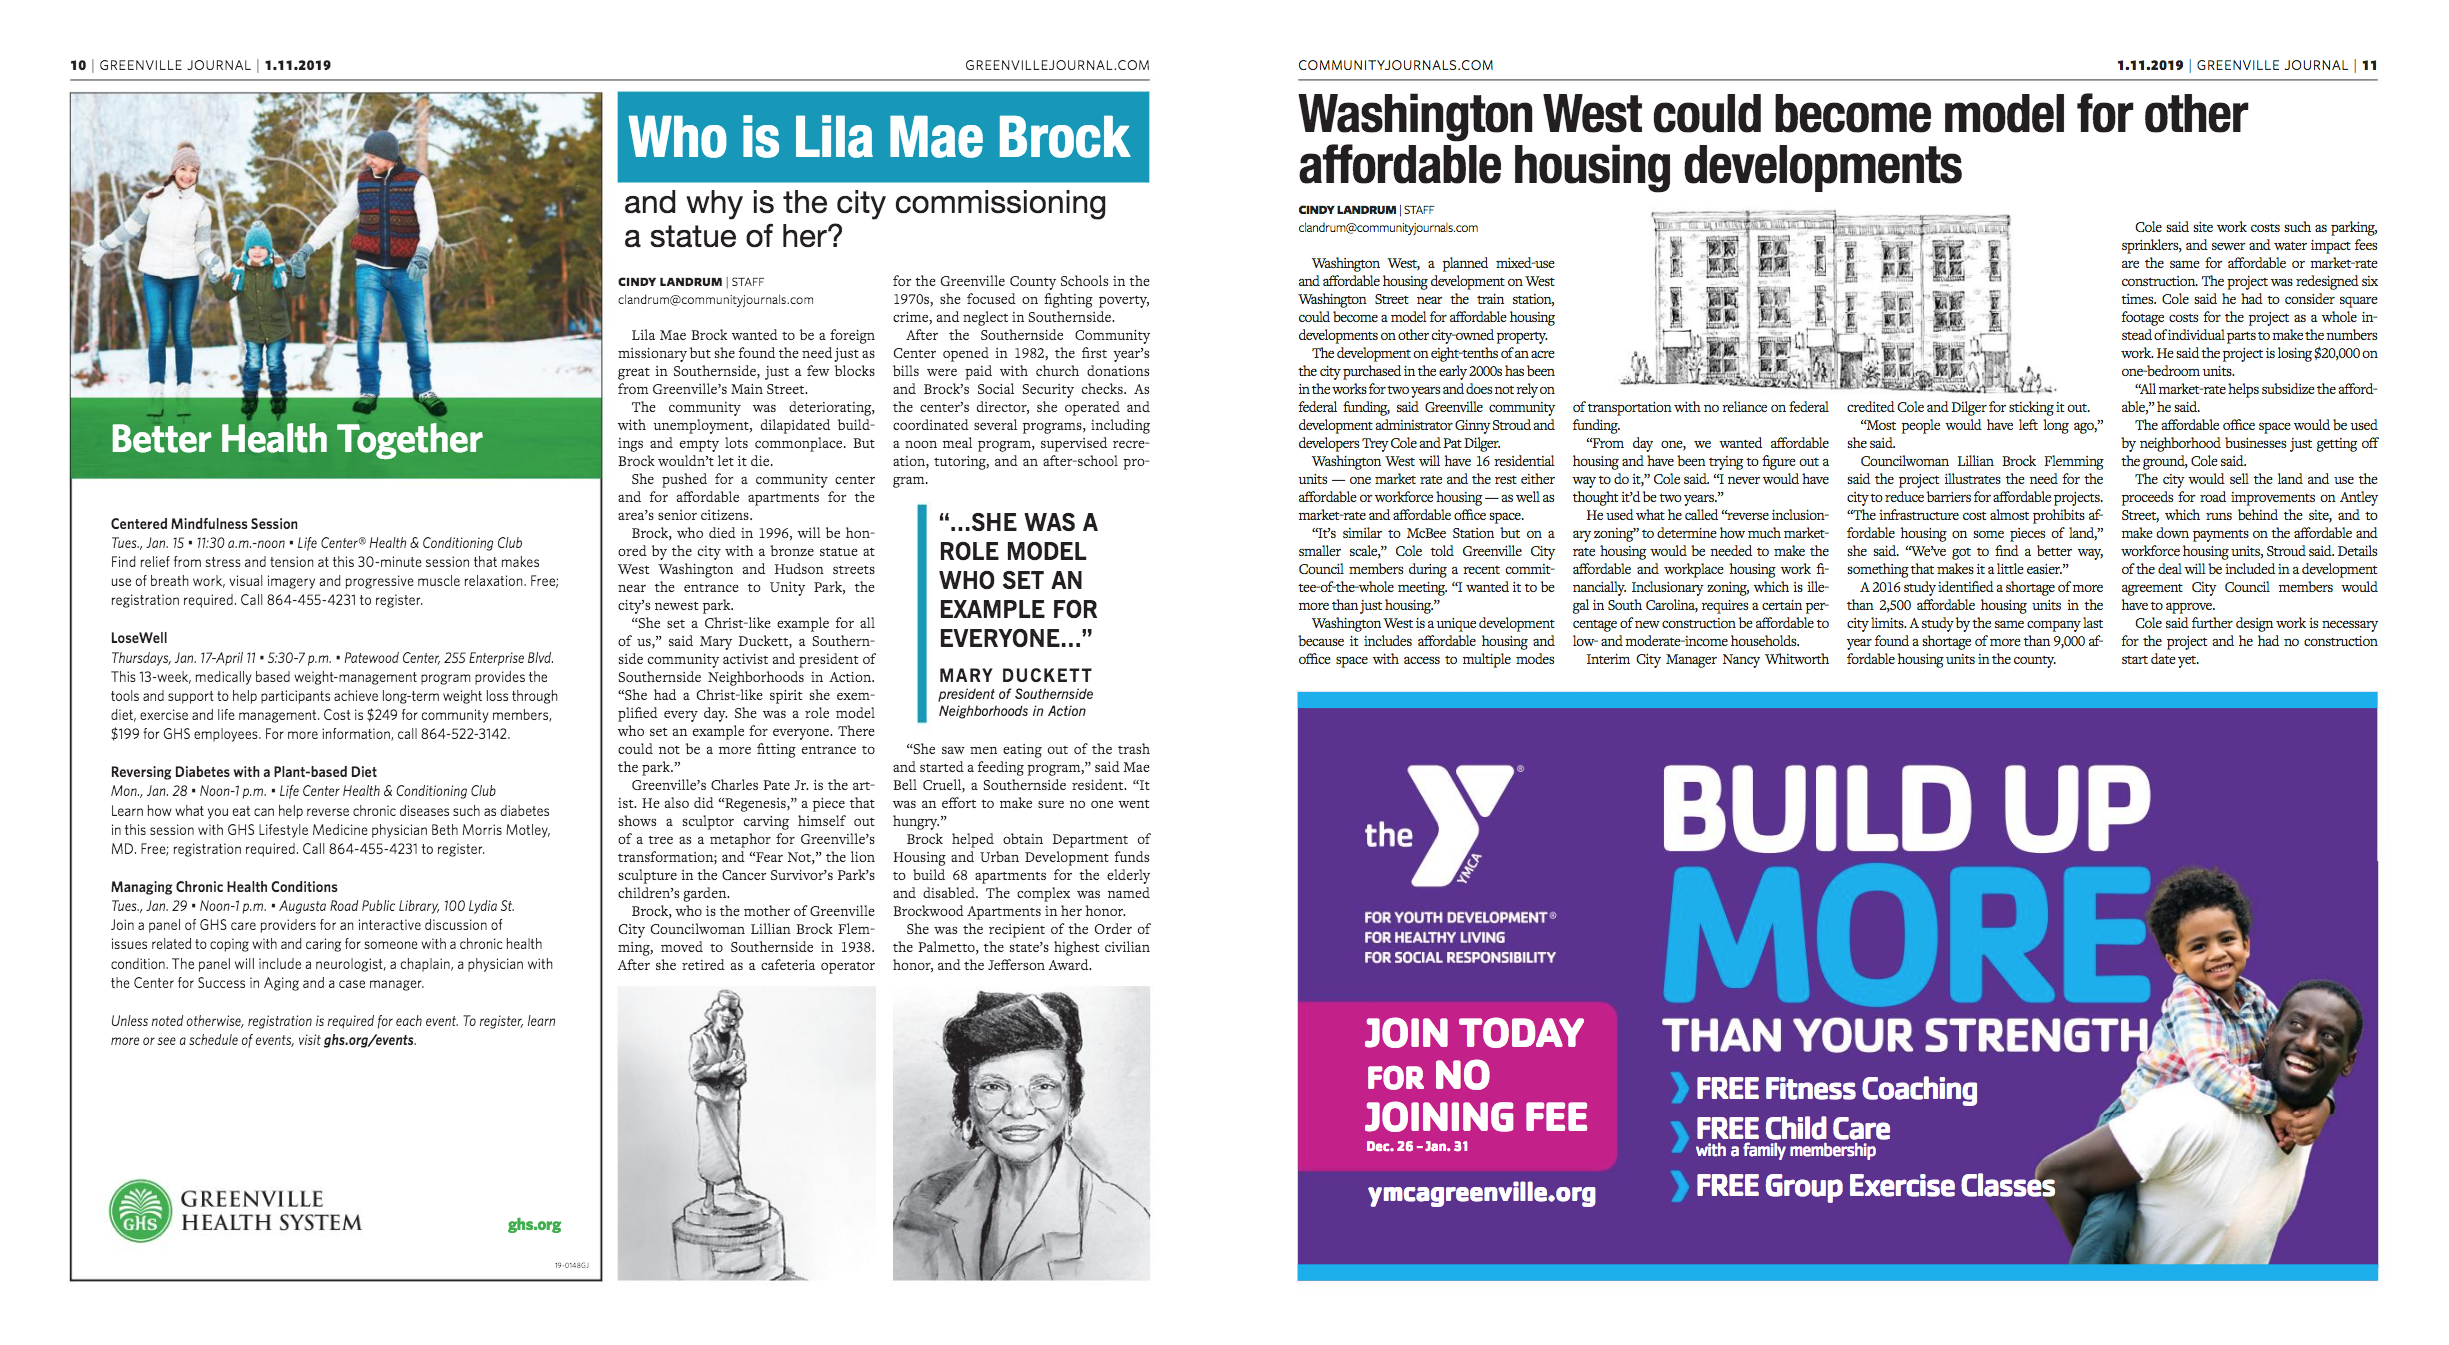 In The News - Washington West was featured in the Greenville Journal in January 2019